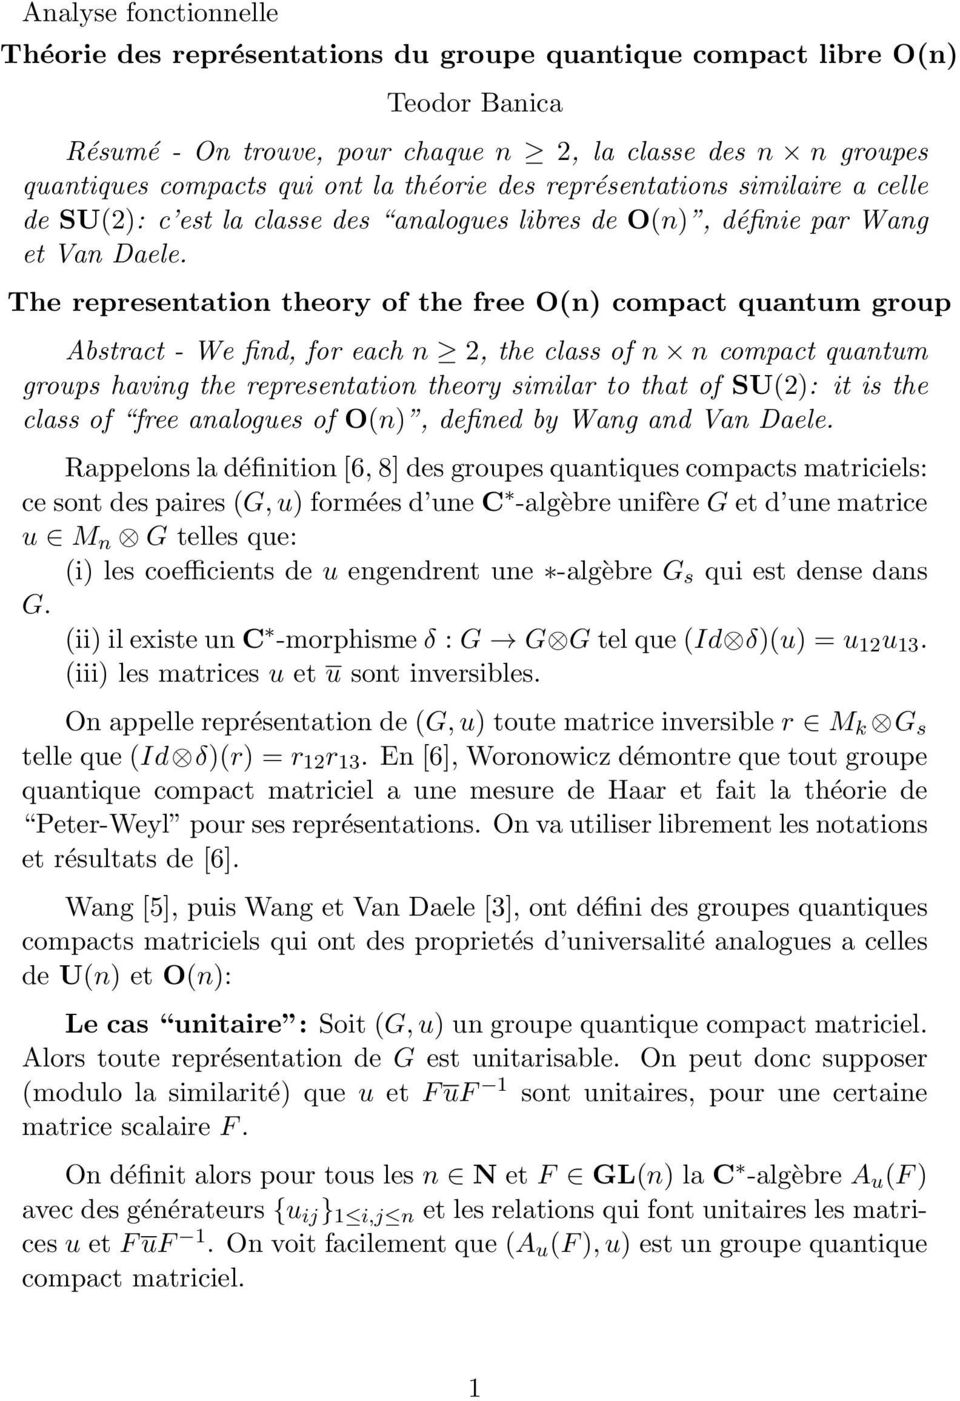 The representation theory of the free O(n) compact quantum group Abstract - We find, for each n 2, the class of n n compact quantum groups having the representation theory similar to that of SU(2):